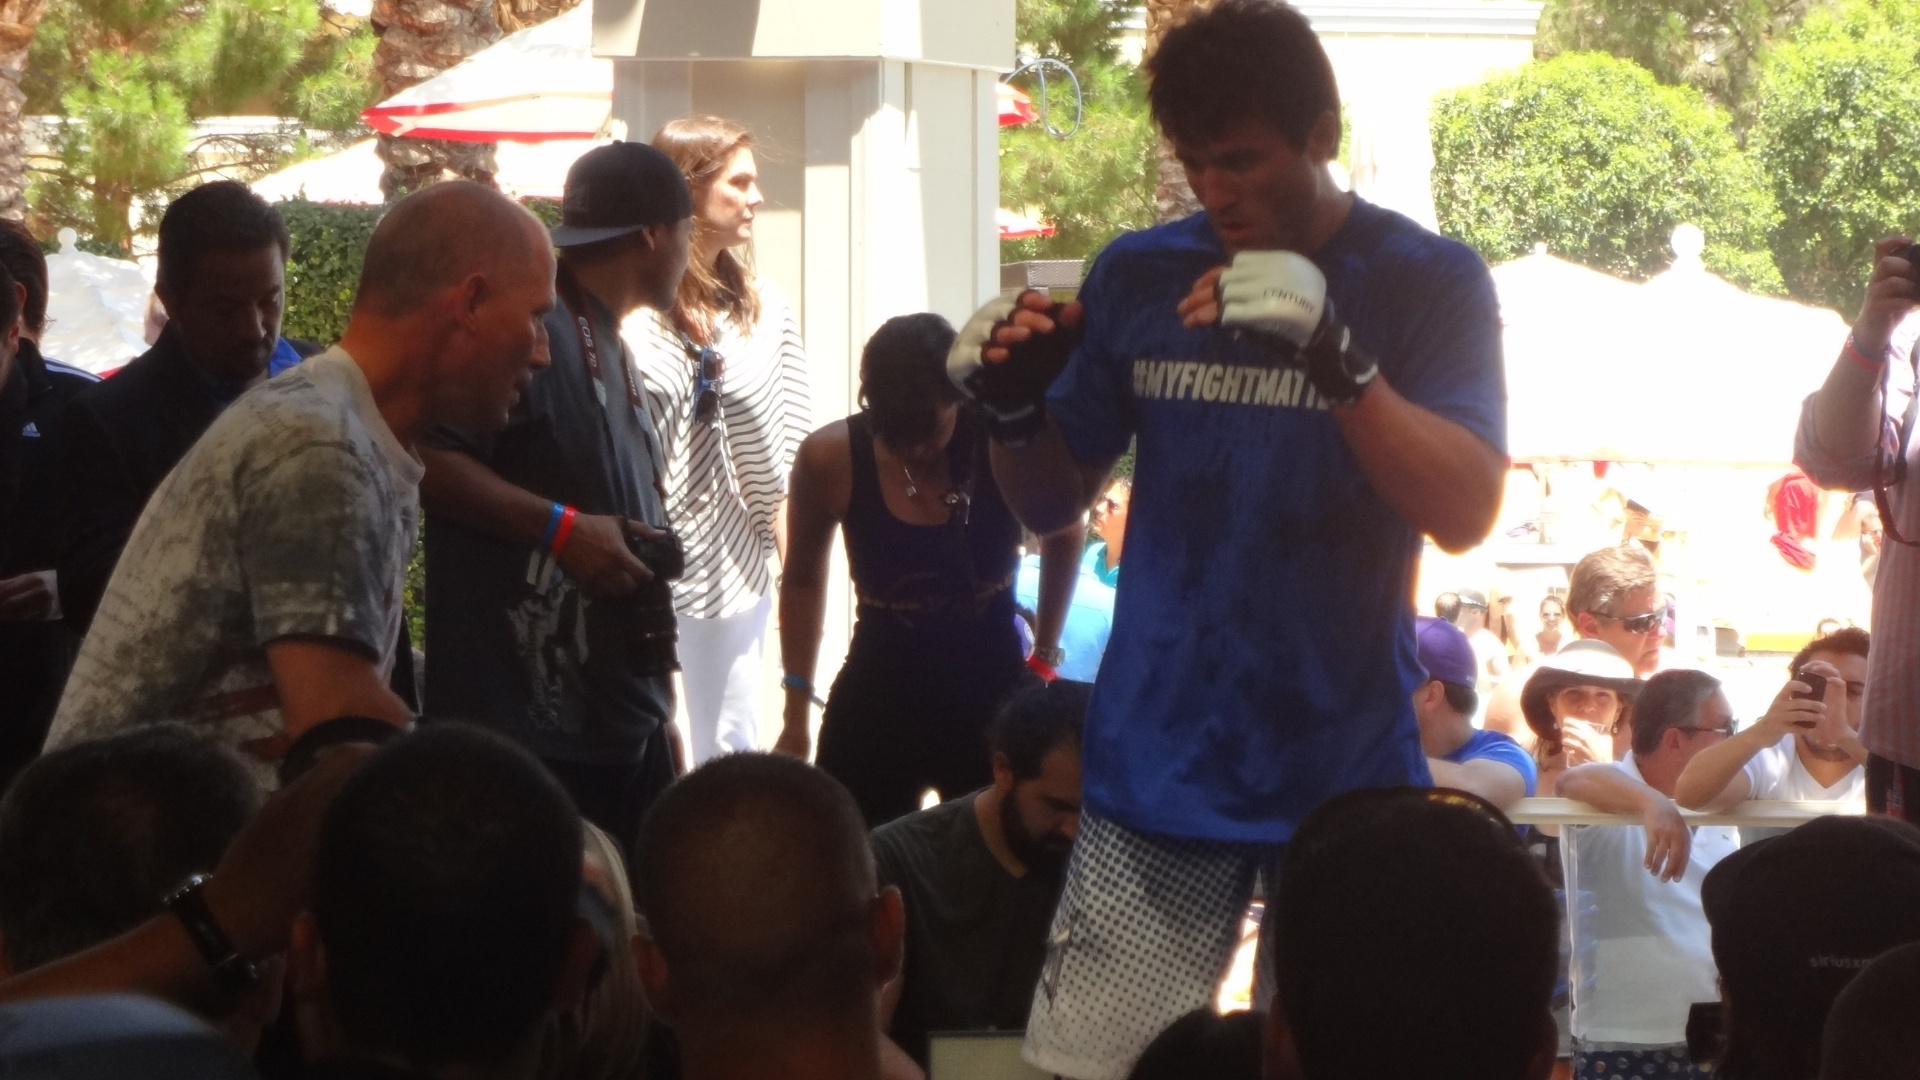 Chael Sonnen participa do treino aberto ao pblico antes de combate histrico com Anderson Silva em Las Vegas